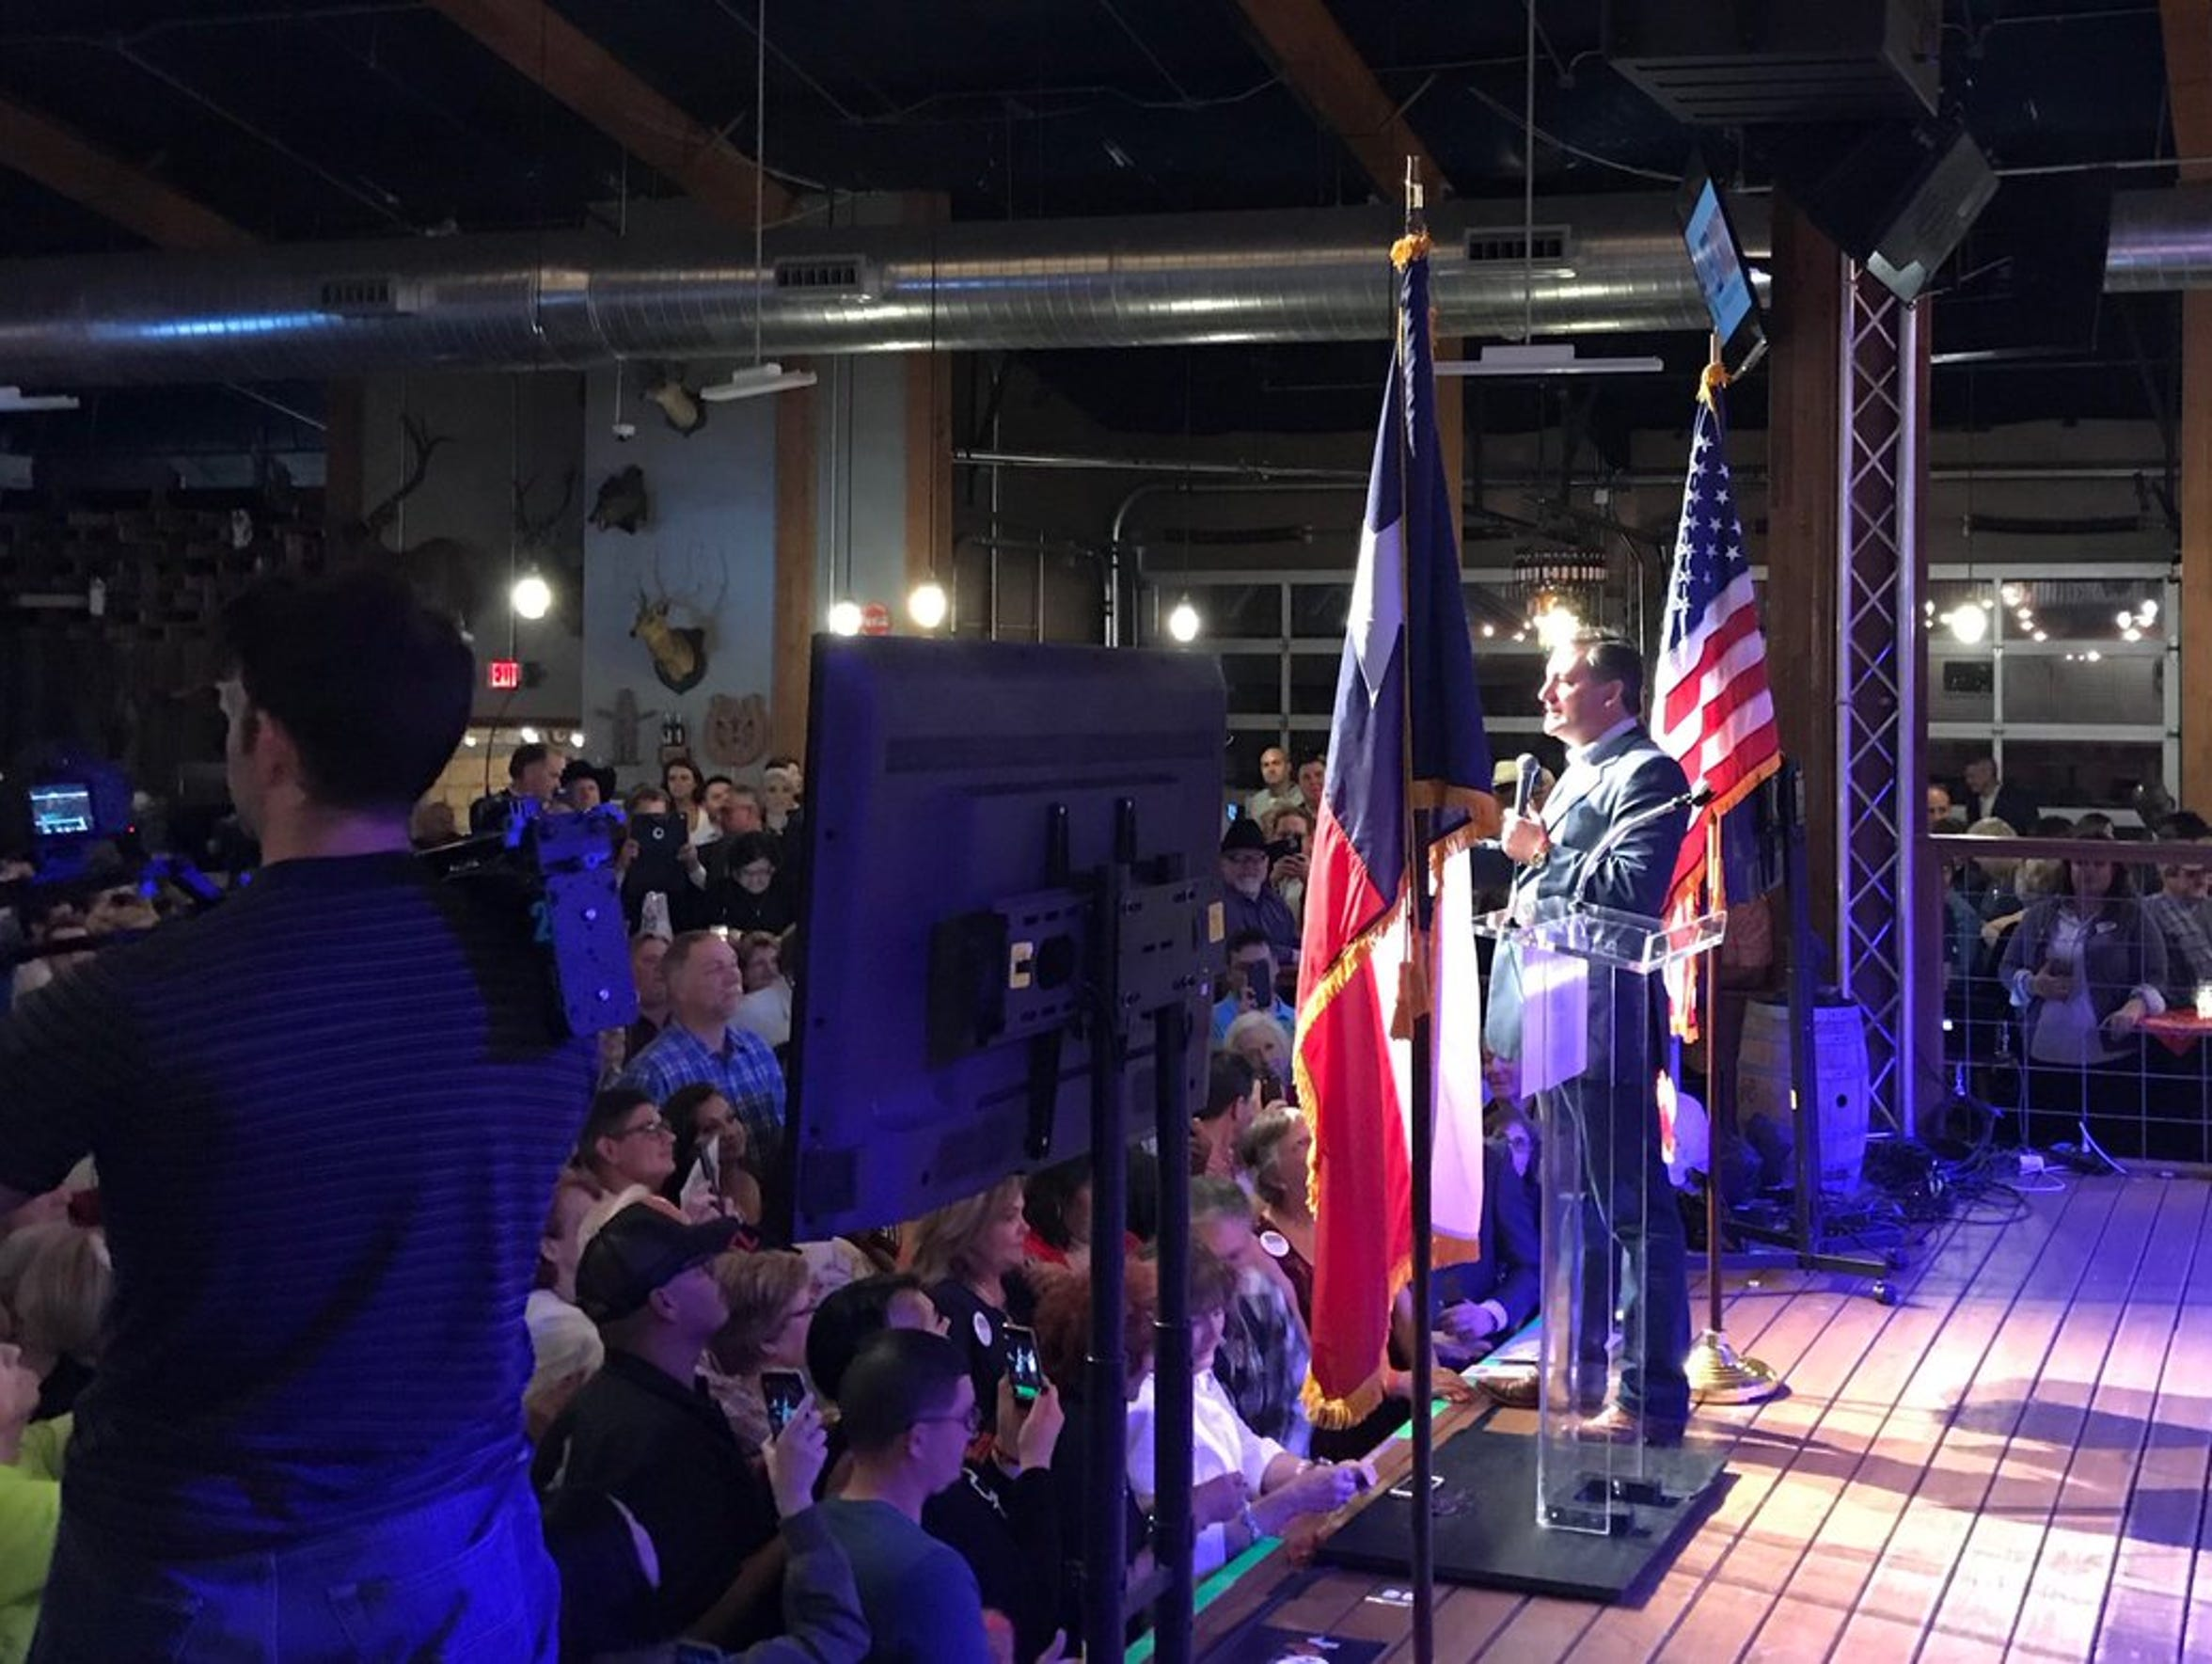 U.S. Sen. Ted Cruz speaks at his campaign railly at